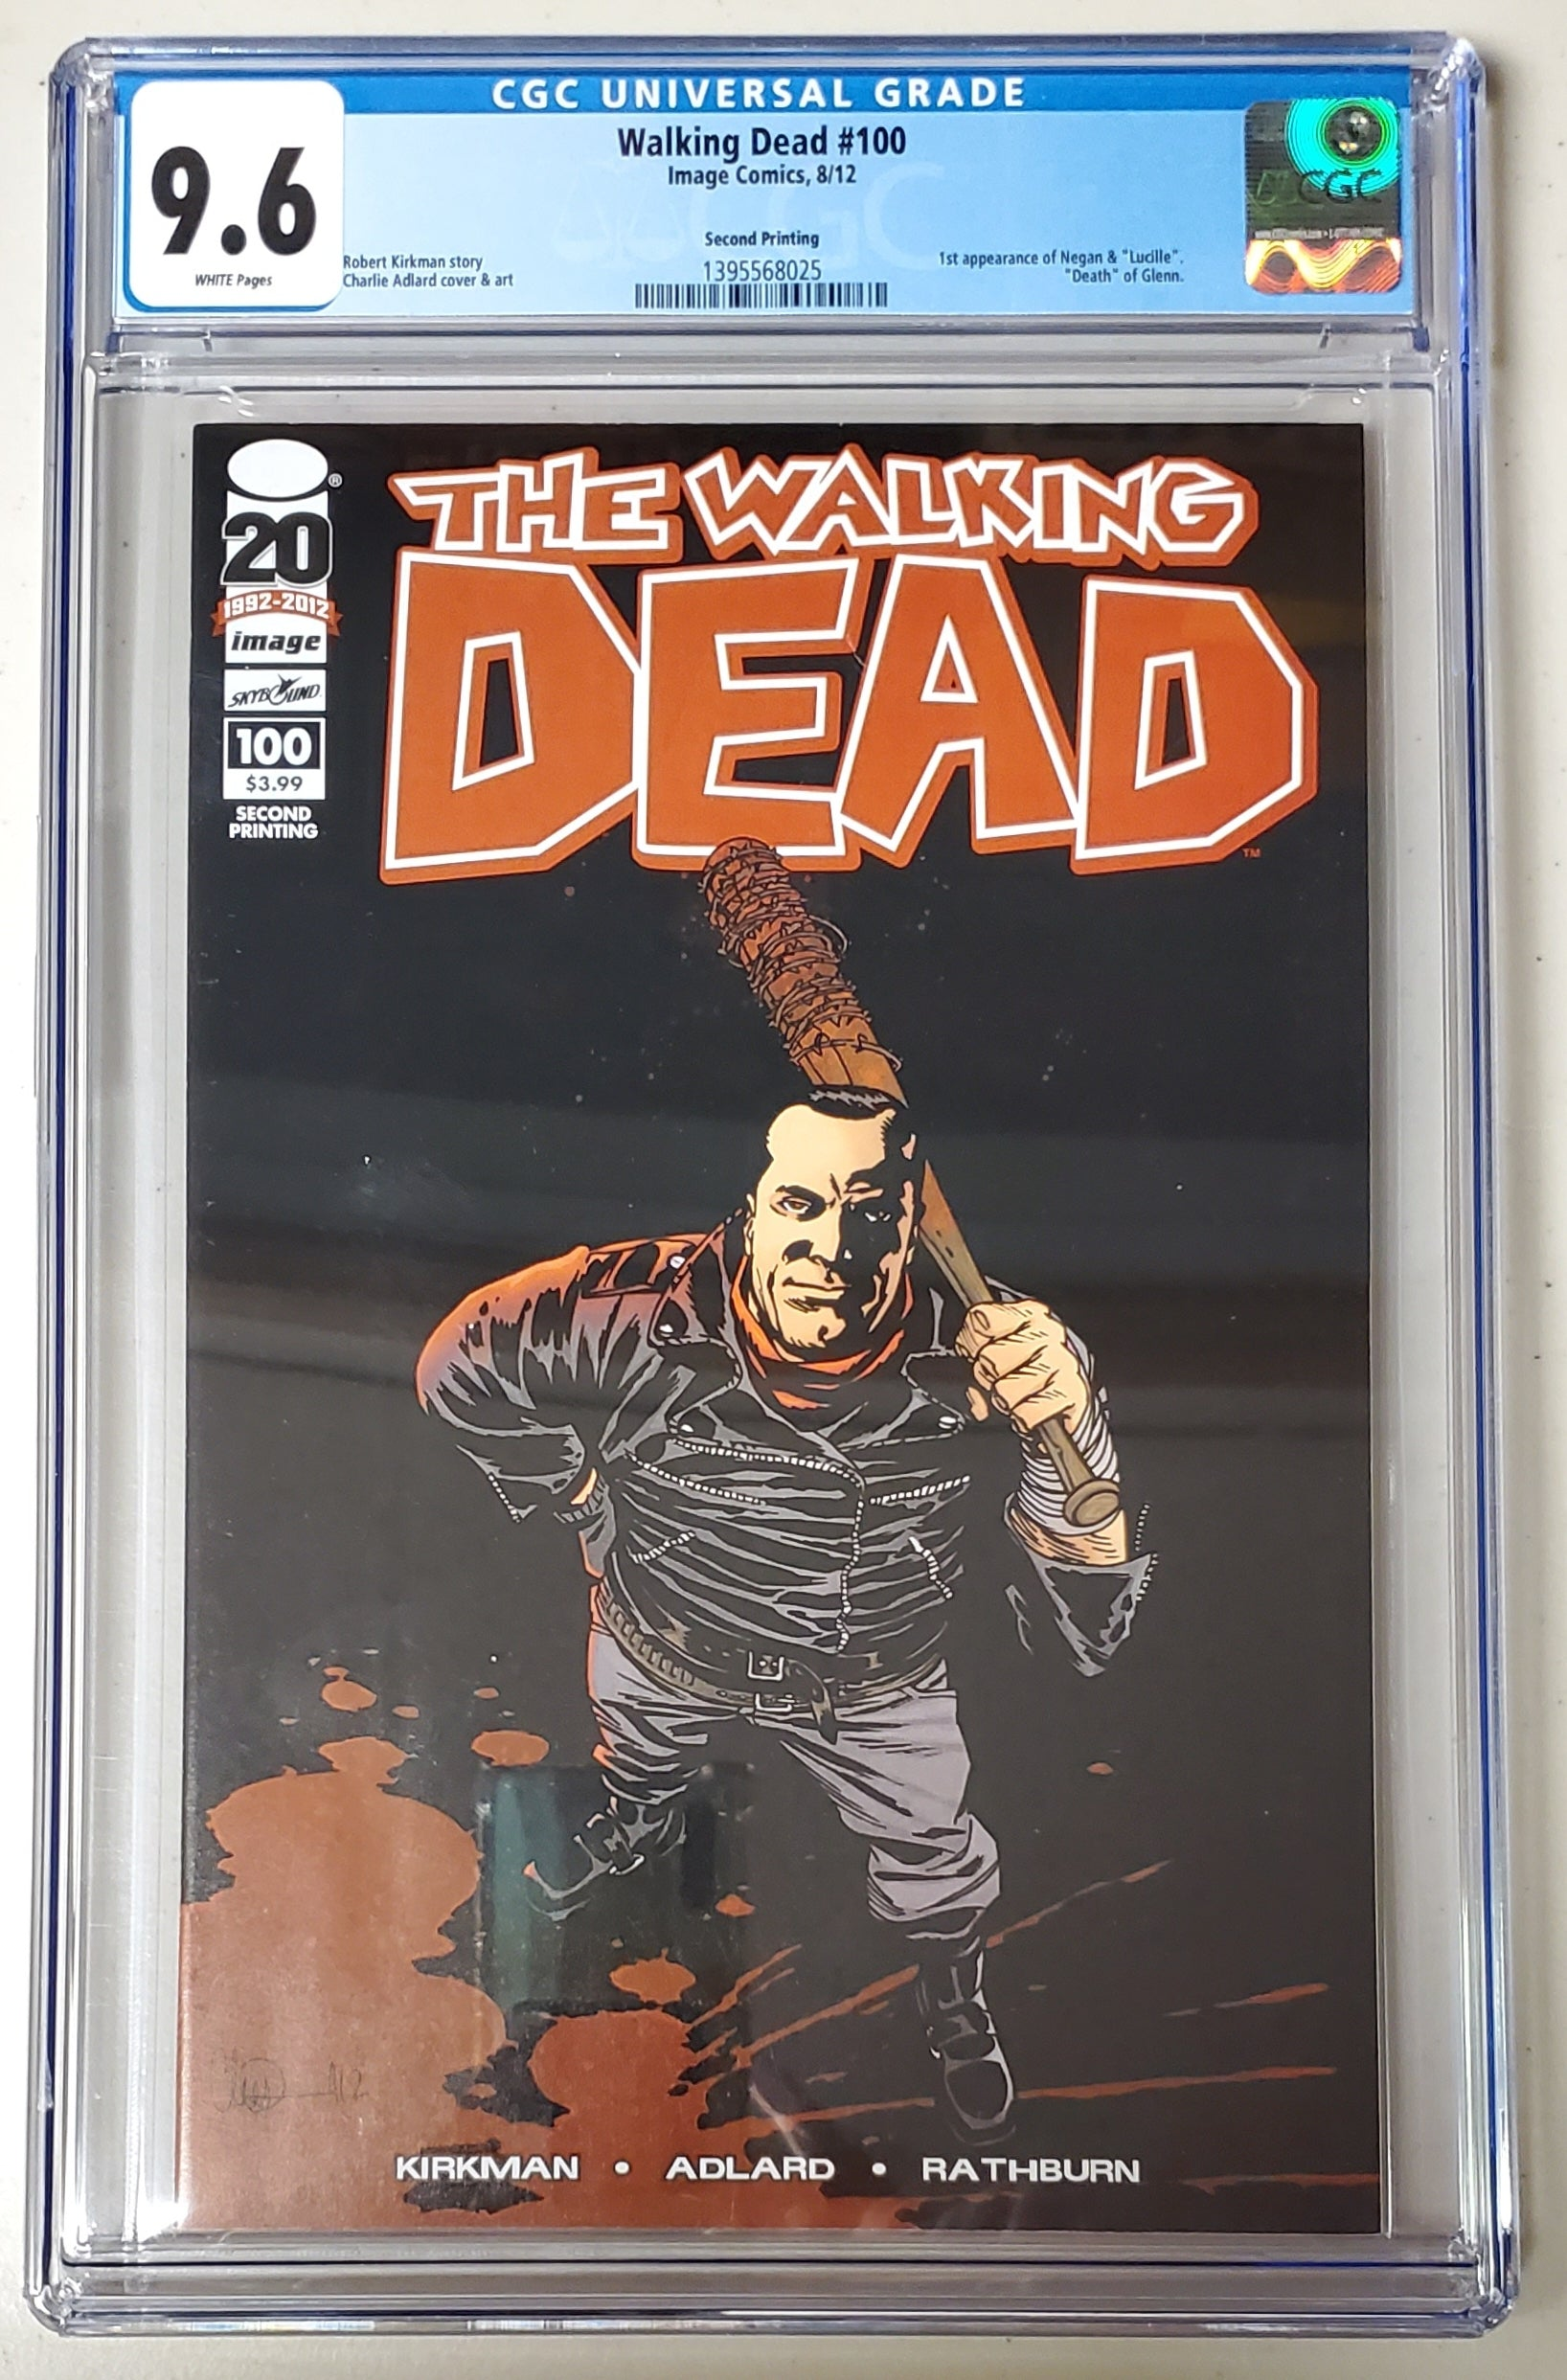 9.6 CGC Walking Dead #100 2nd Print (1st App Negan) 2012